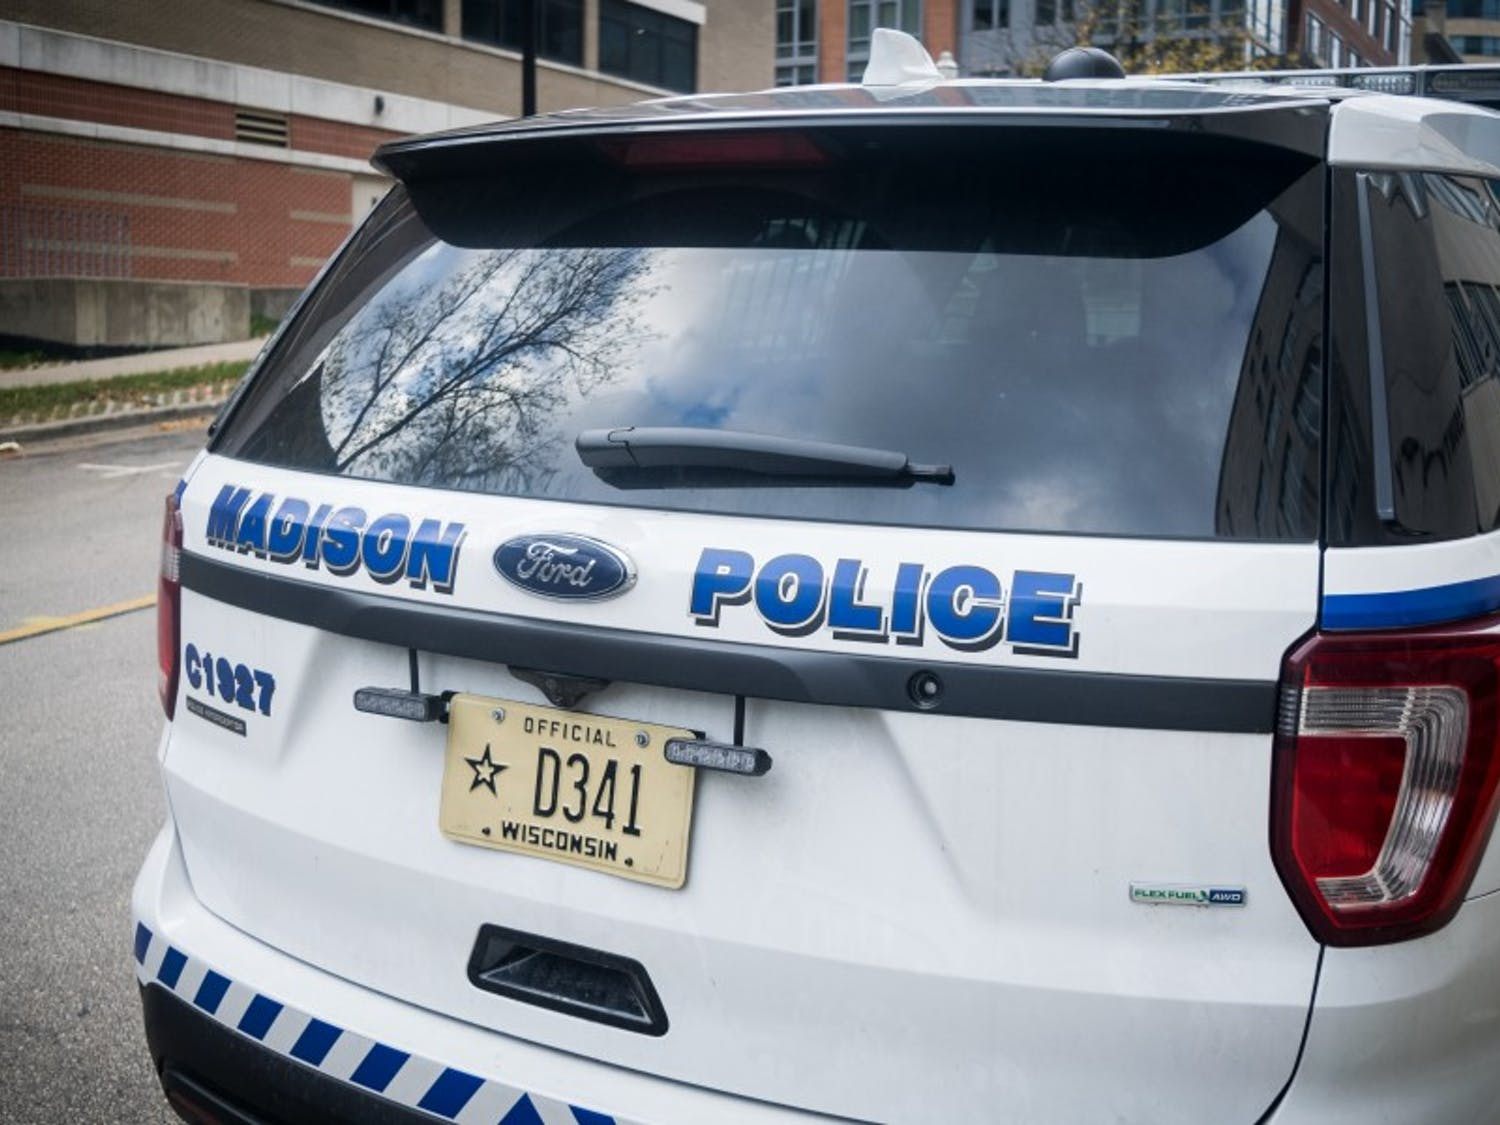 This Sunday a Madison man was cited for speeding after hitting a 20-year-old pedestrian on University and N. Basset, and a robbery was reported on the 200 block of Gilman Street.